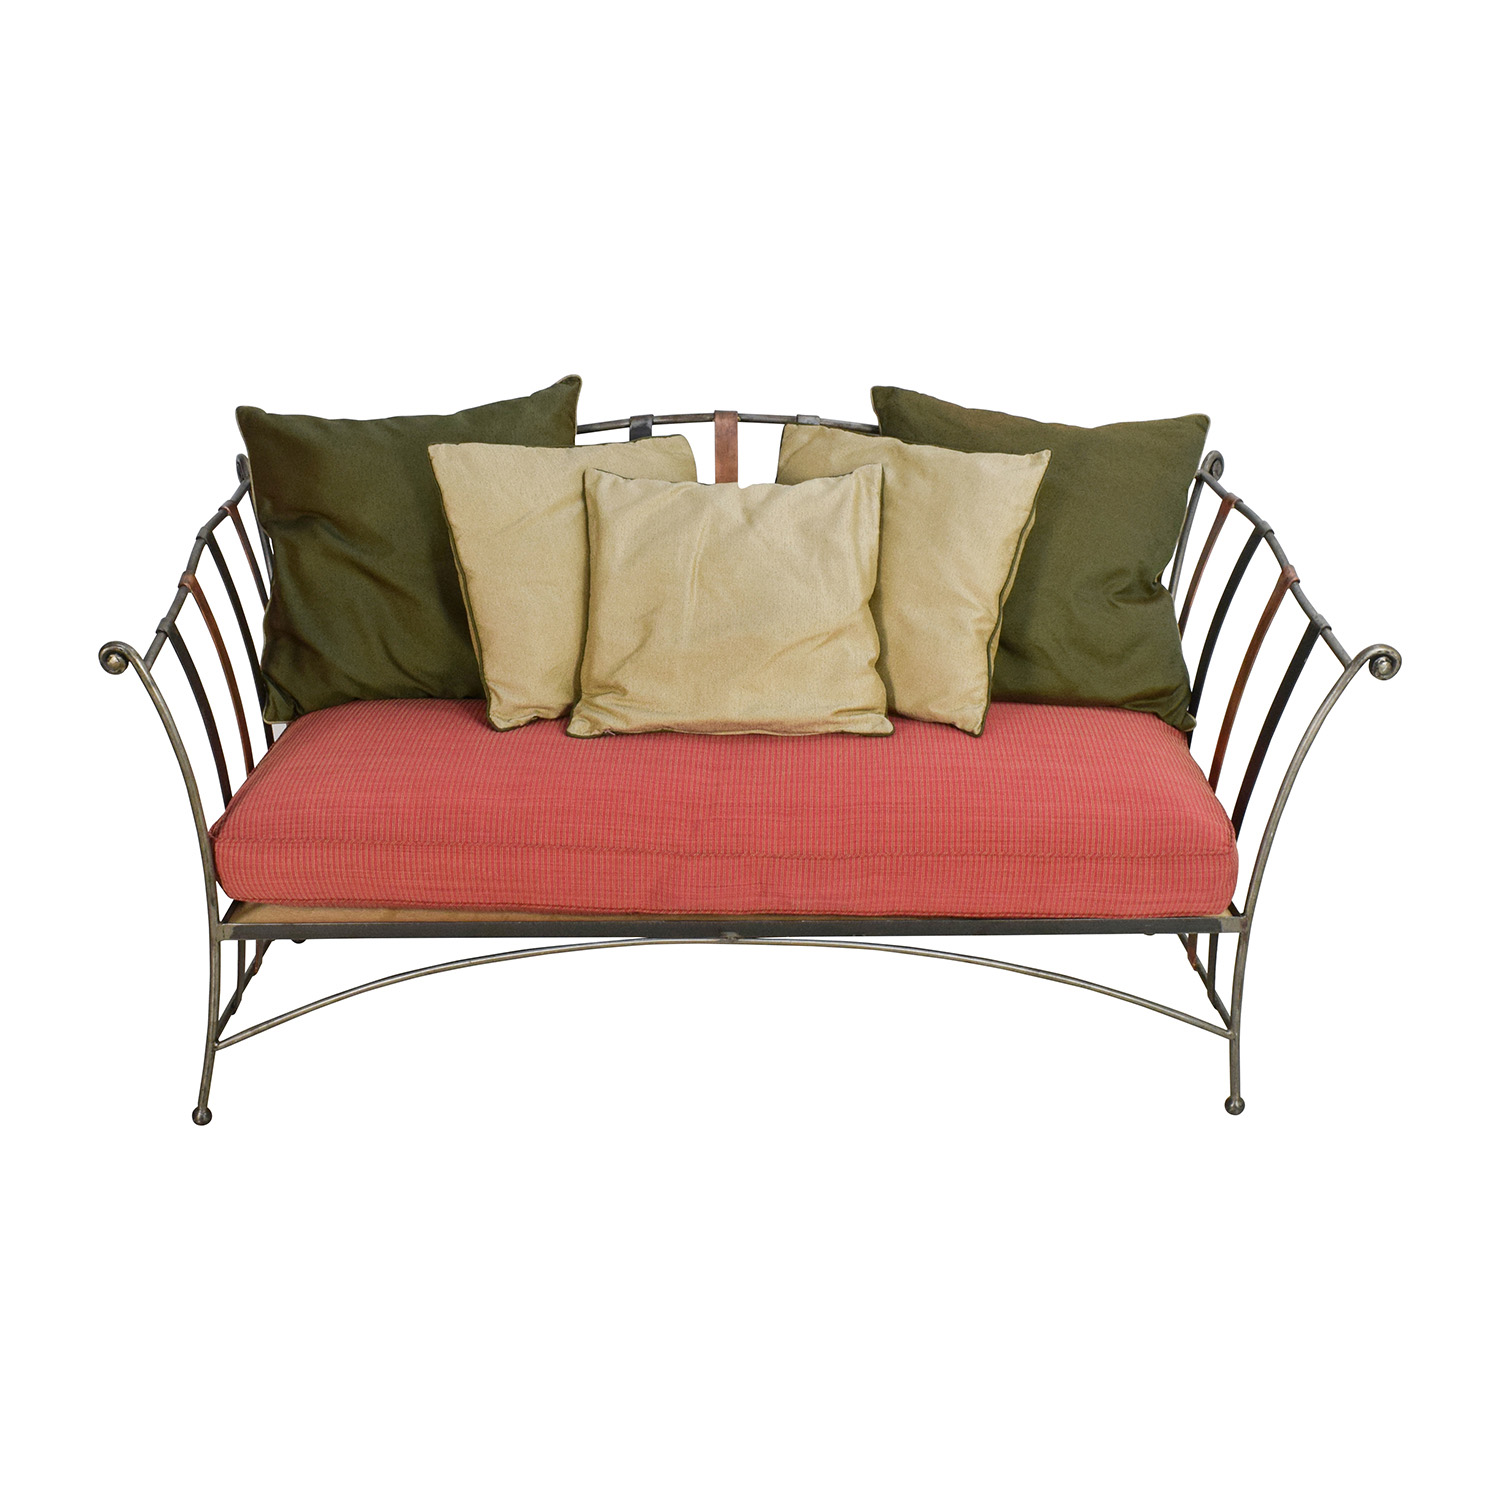 Custom Made Wrought Iron Daybed Sofa With Silk Pillows nj